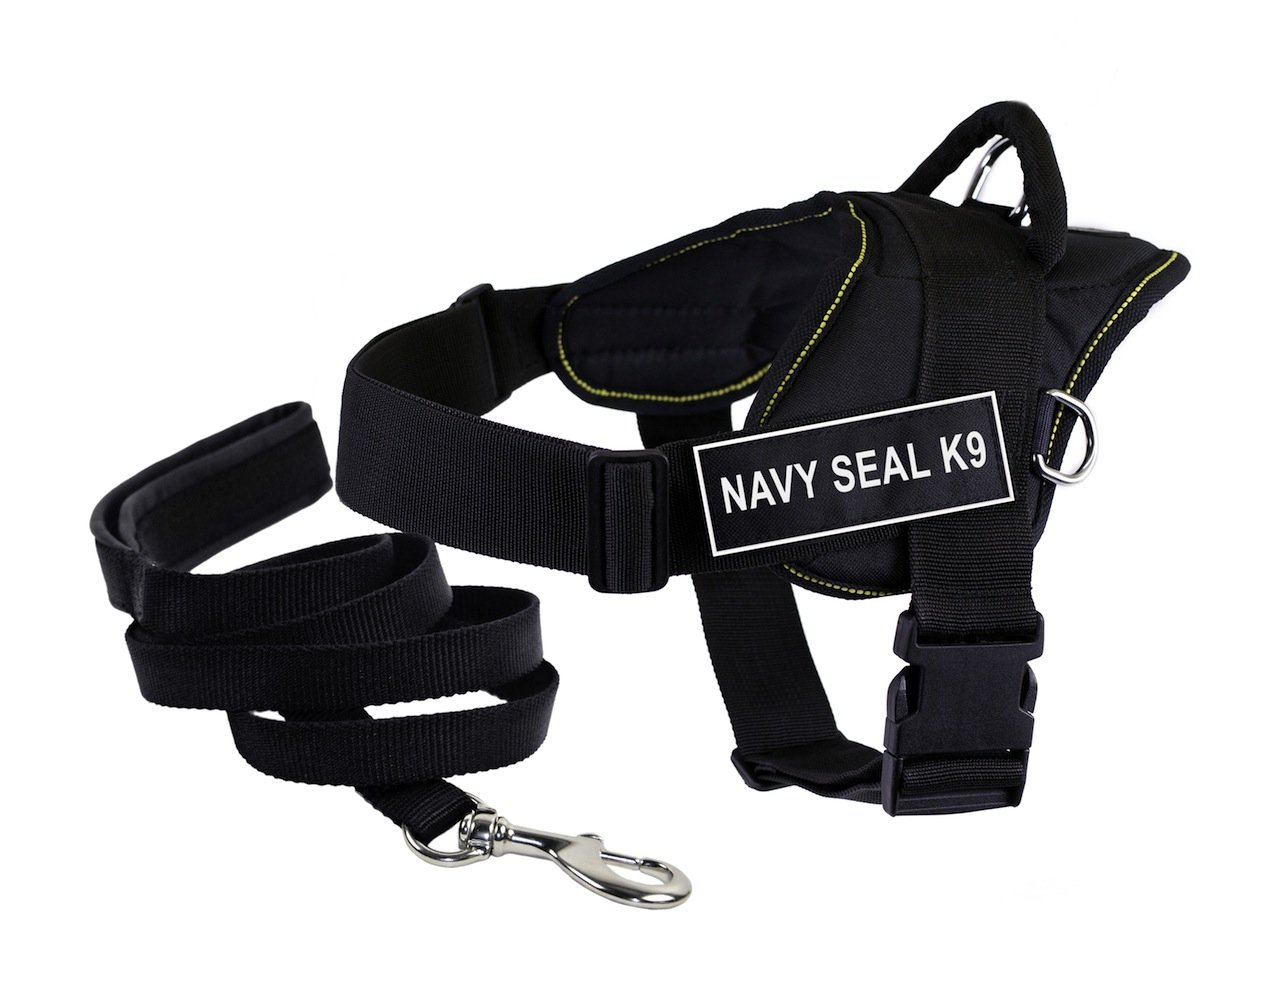 Dean & Tyler's DT Fun NAVY SEAL K9 Harness, Medium, with 6 ft Padded Puppy Leash.